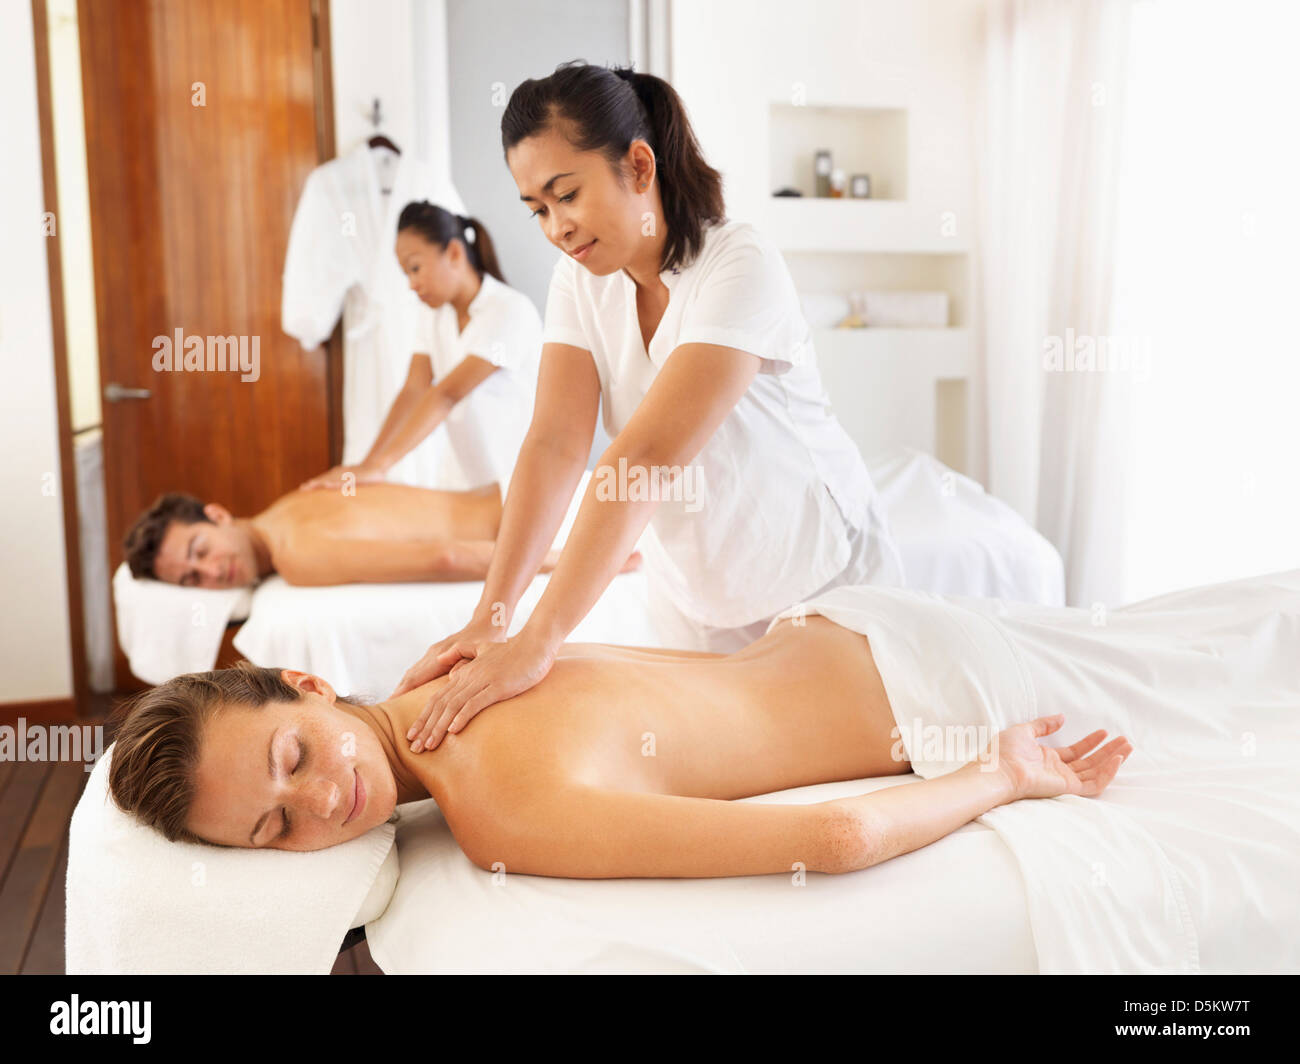 Massage two